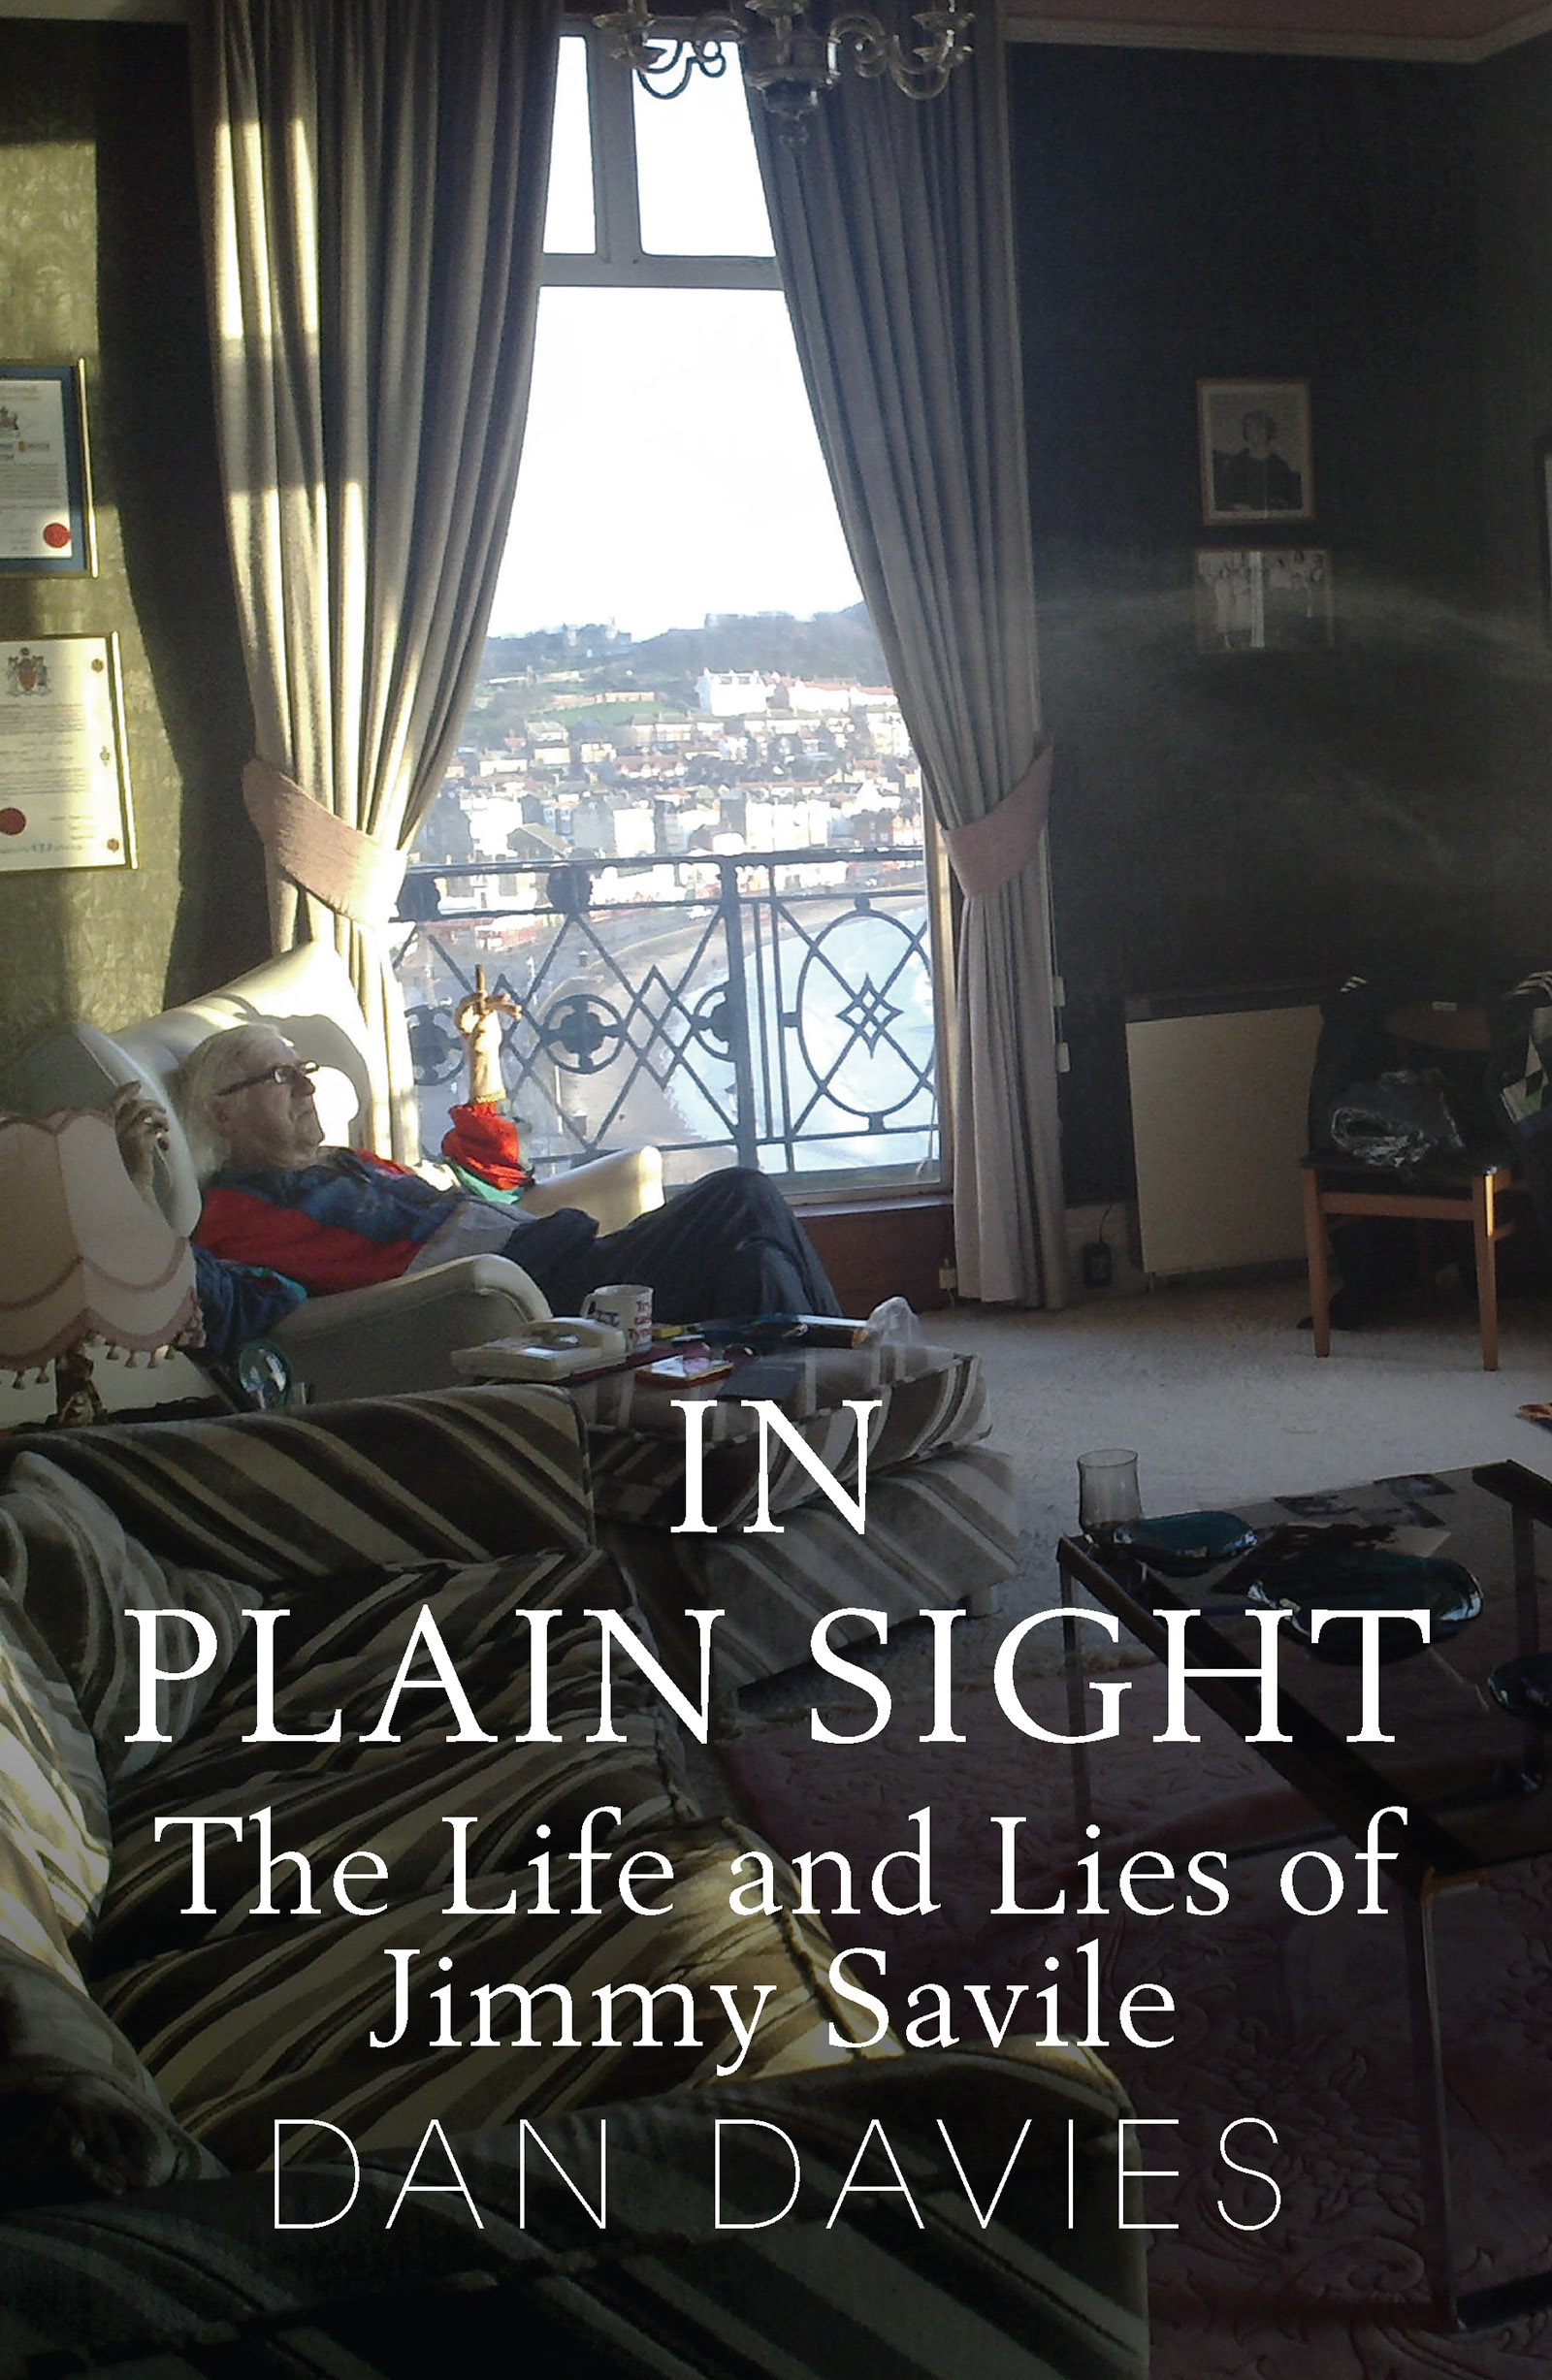 In Plain Sight The Life and Lies of Jimmy Savile